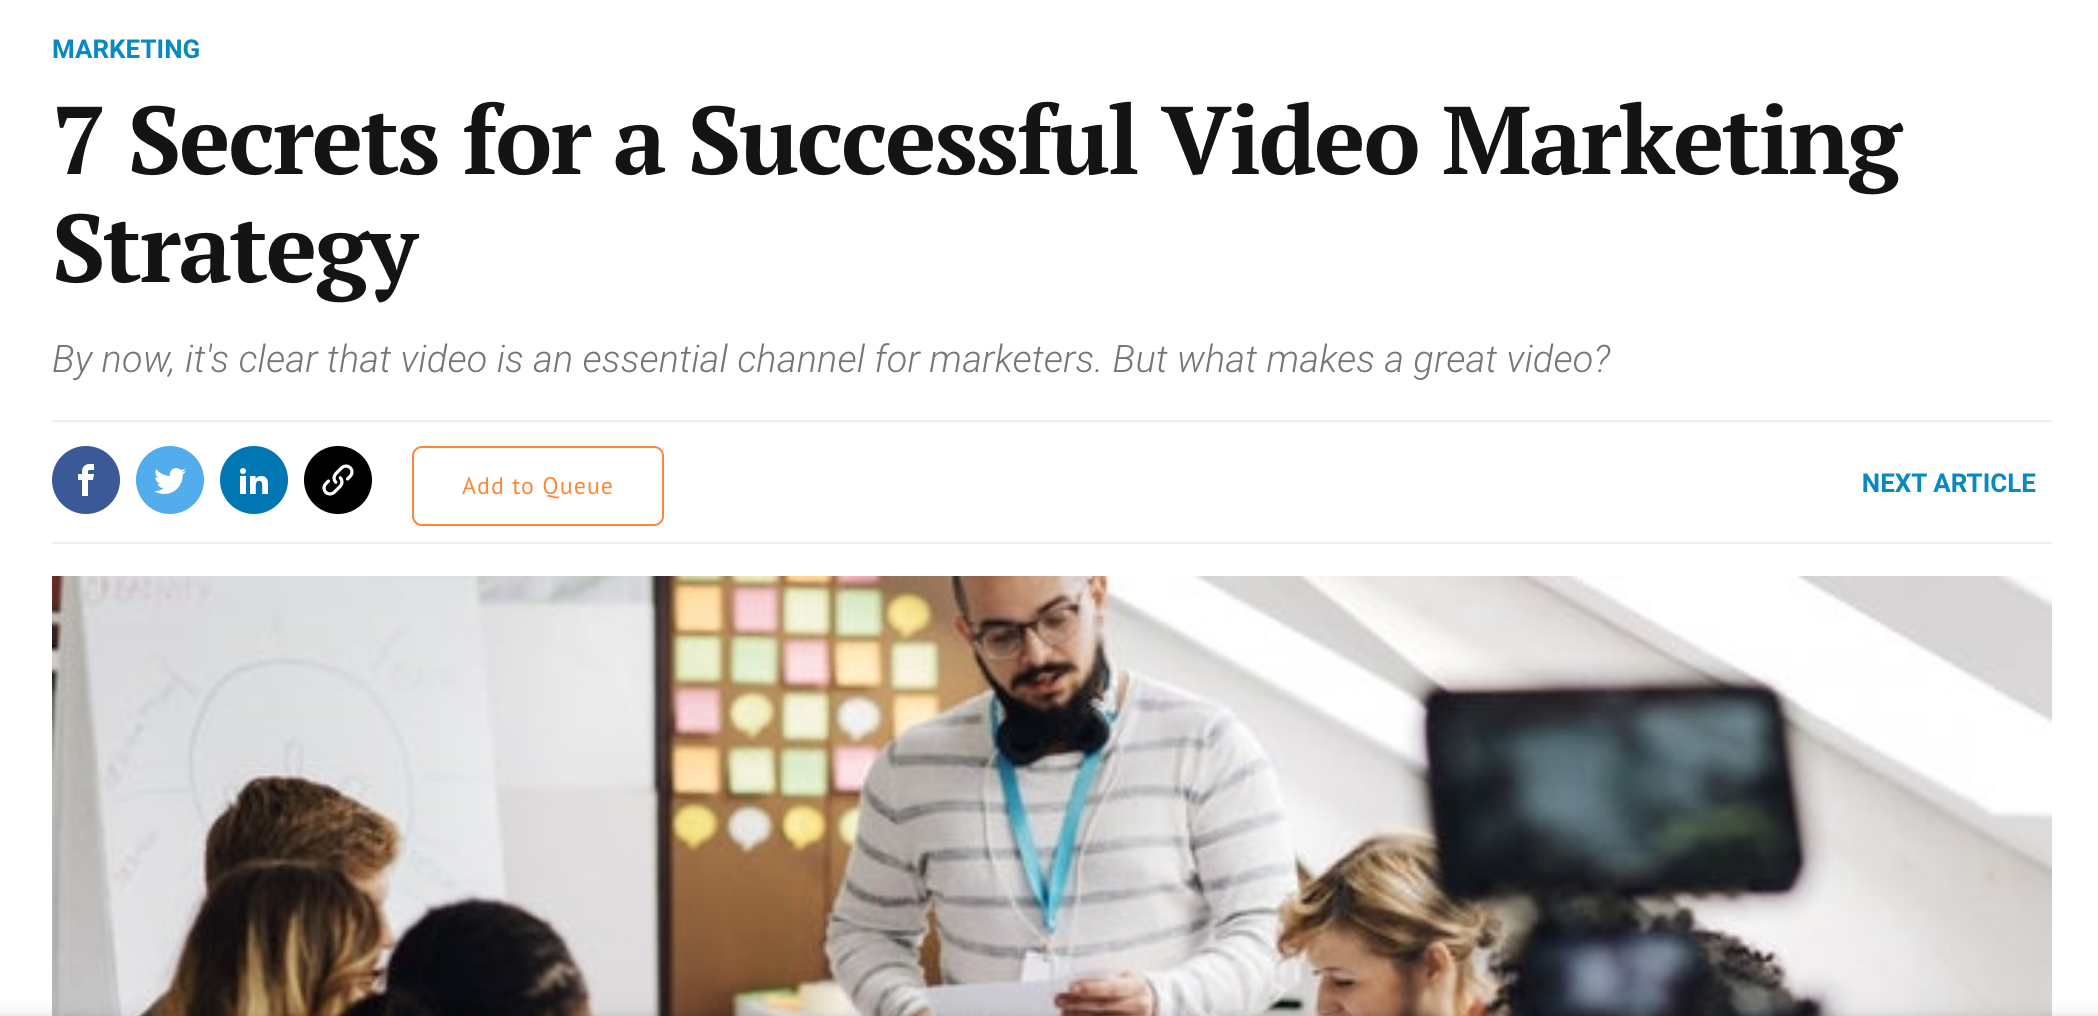 Article about video marketing